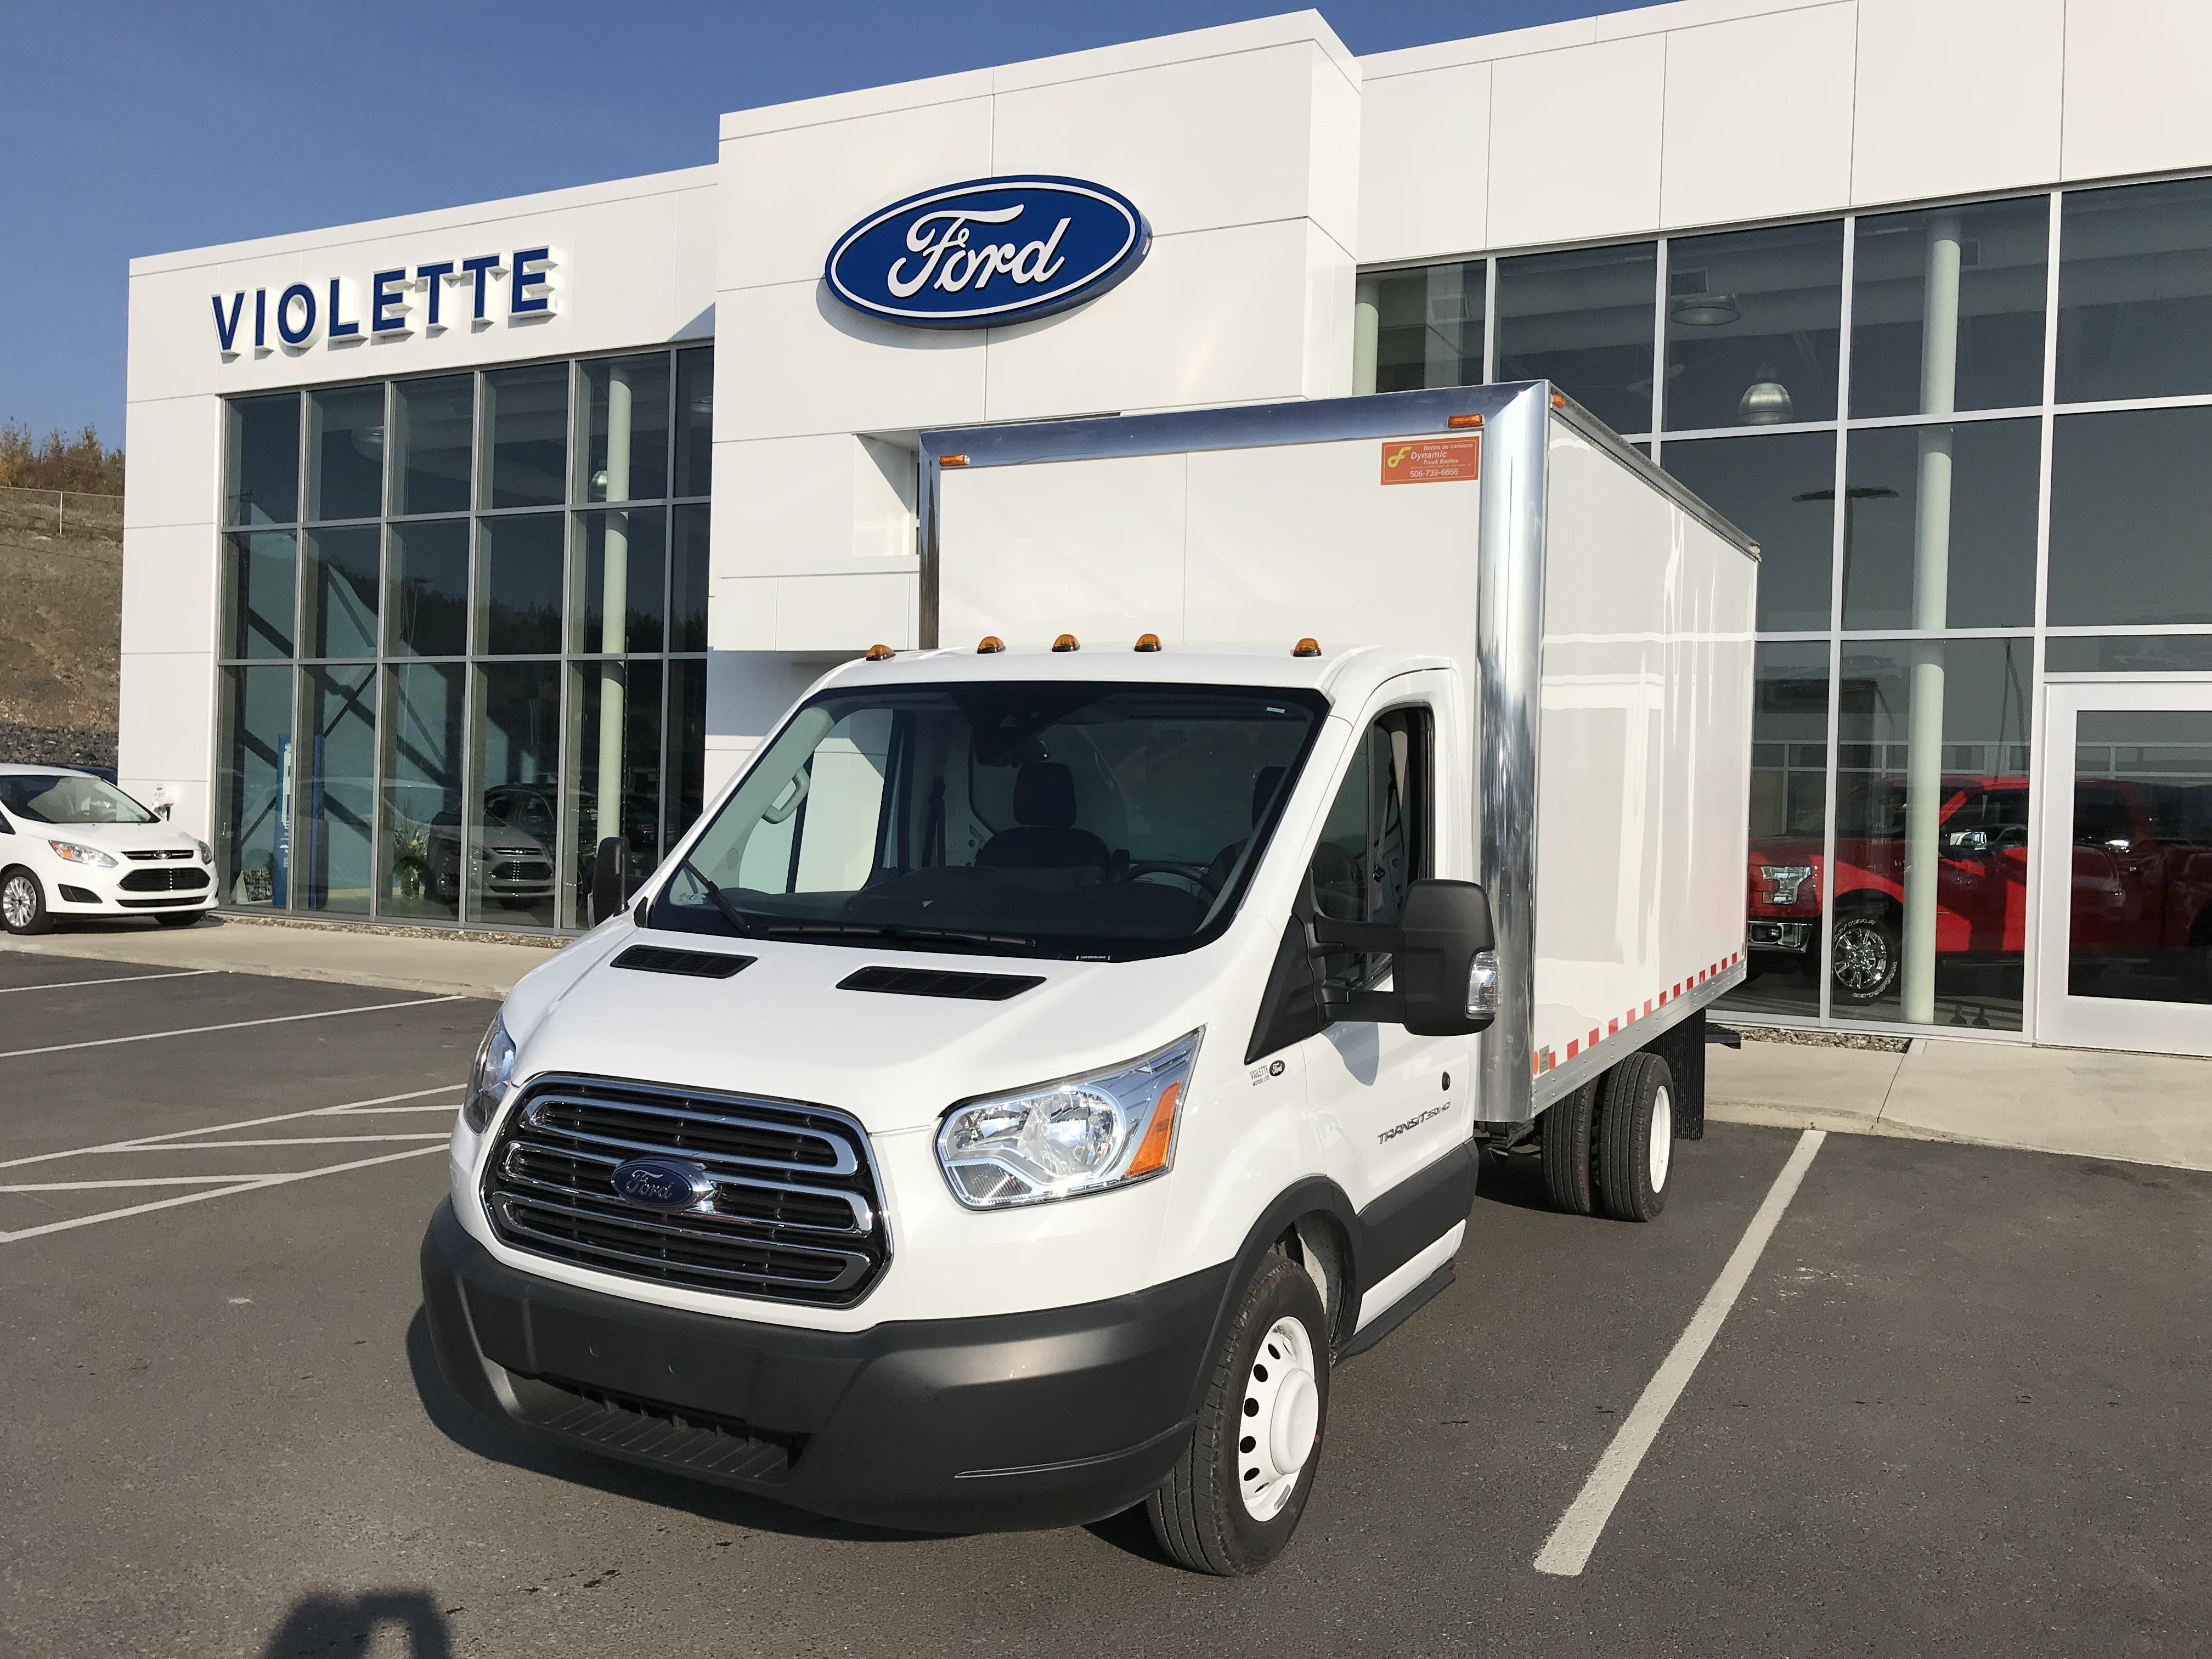 2017 Transit 350 HD Chassis Cab XL